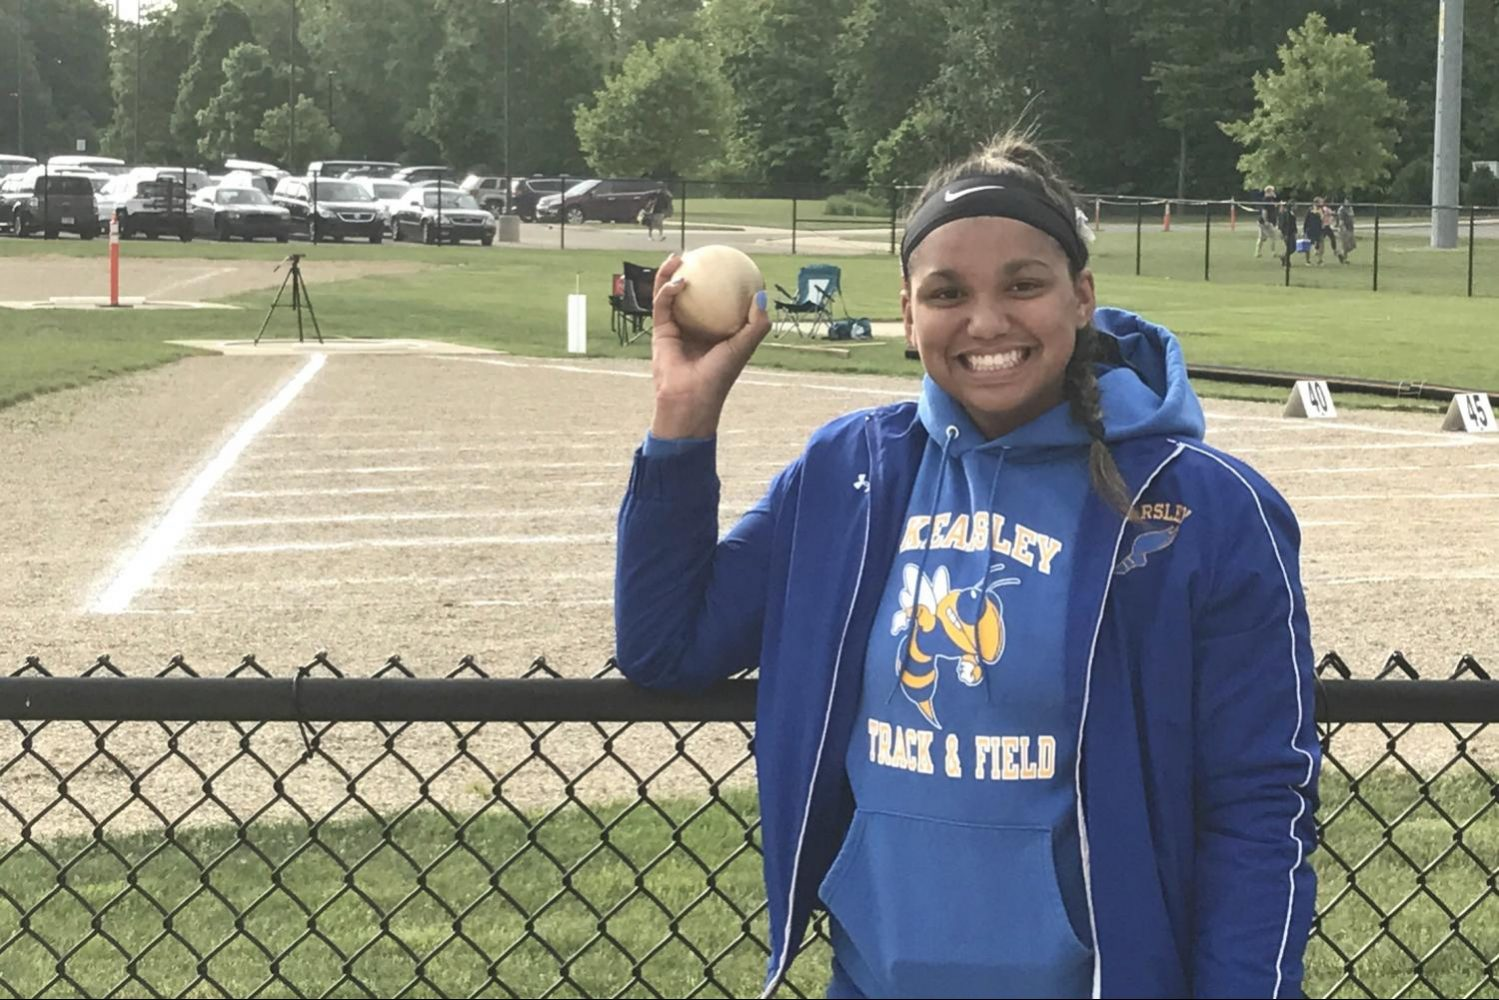 Sophomore+Makenzie+Ramey+holds+the+shot+put+she+threw+at+the+MHSAA+Division+1+state+final+Saturday%2C+June+3%2C+at+East+Kentwood.+It+was+the+first+trip+to+the+state+final+for+Ramey.